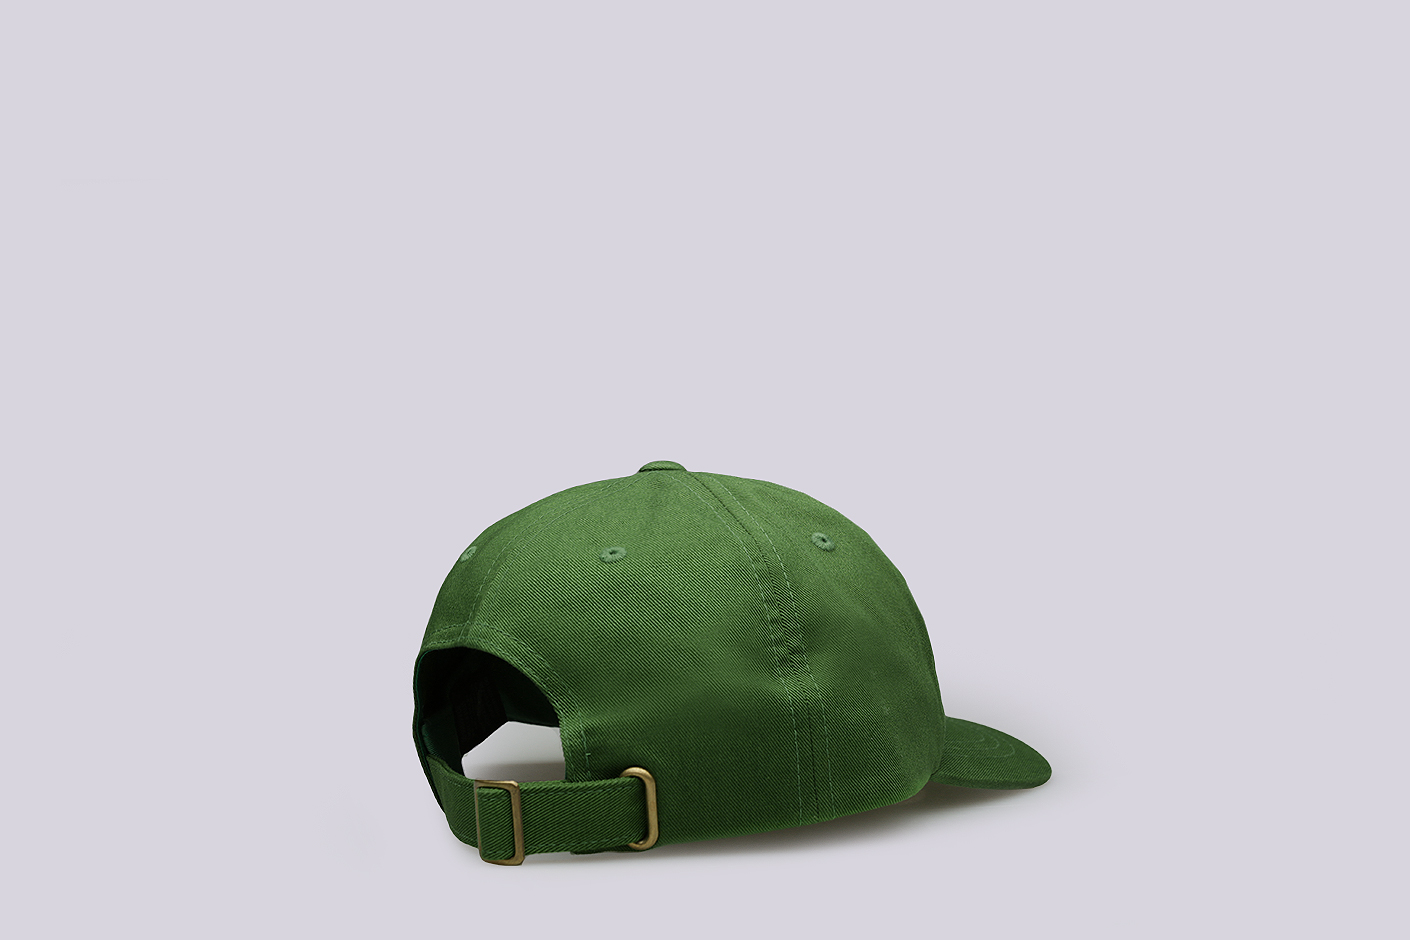 aaa16f402f795 Зелёная кепка SP19 Stock Low Pro Cap от Stussy (131863-green) по ...